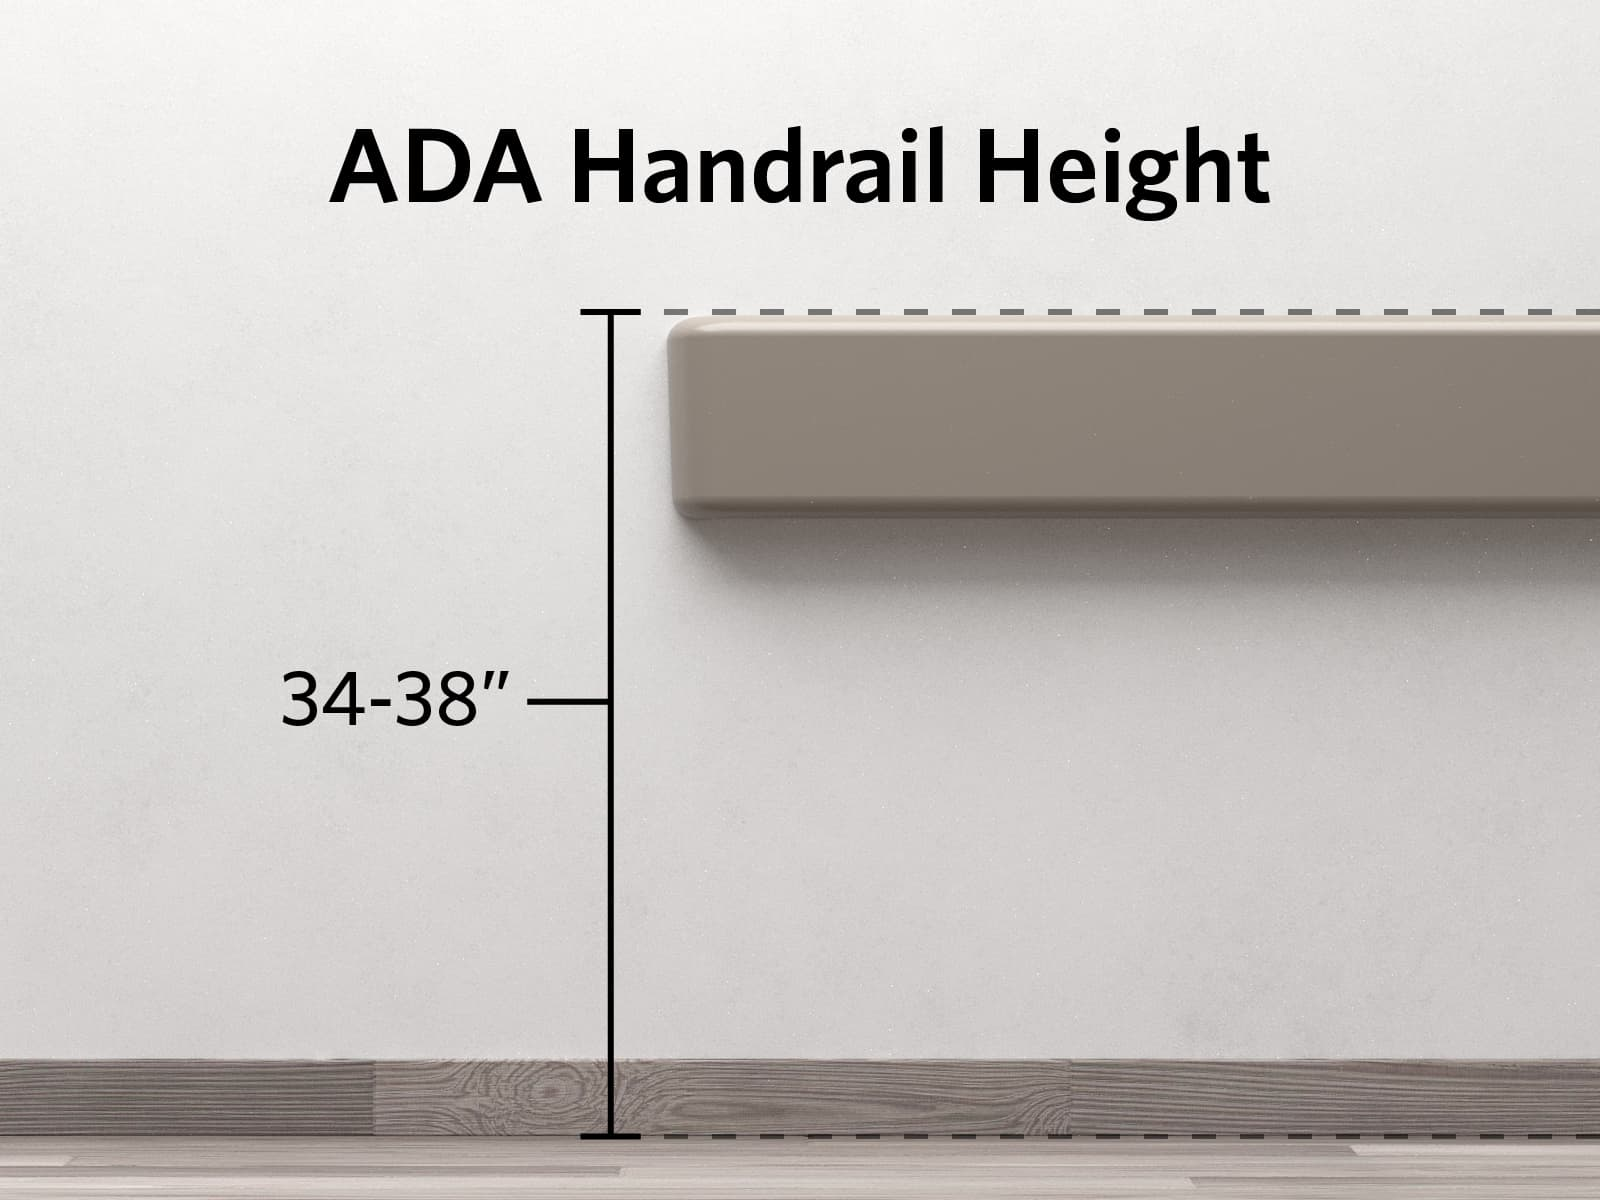 A handrail attached to a wall with a vertical line measuring 34 to 38 inches beside it